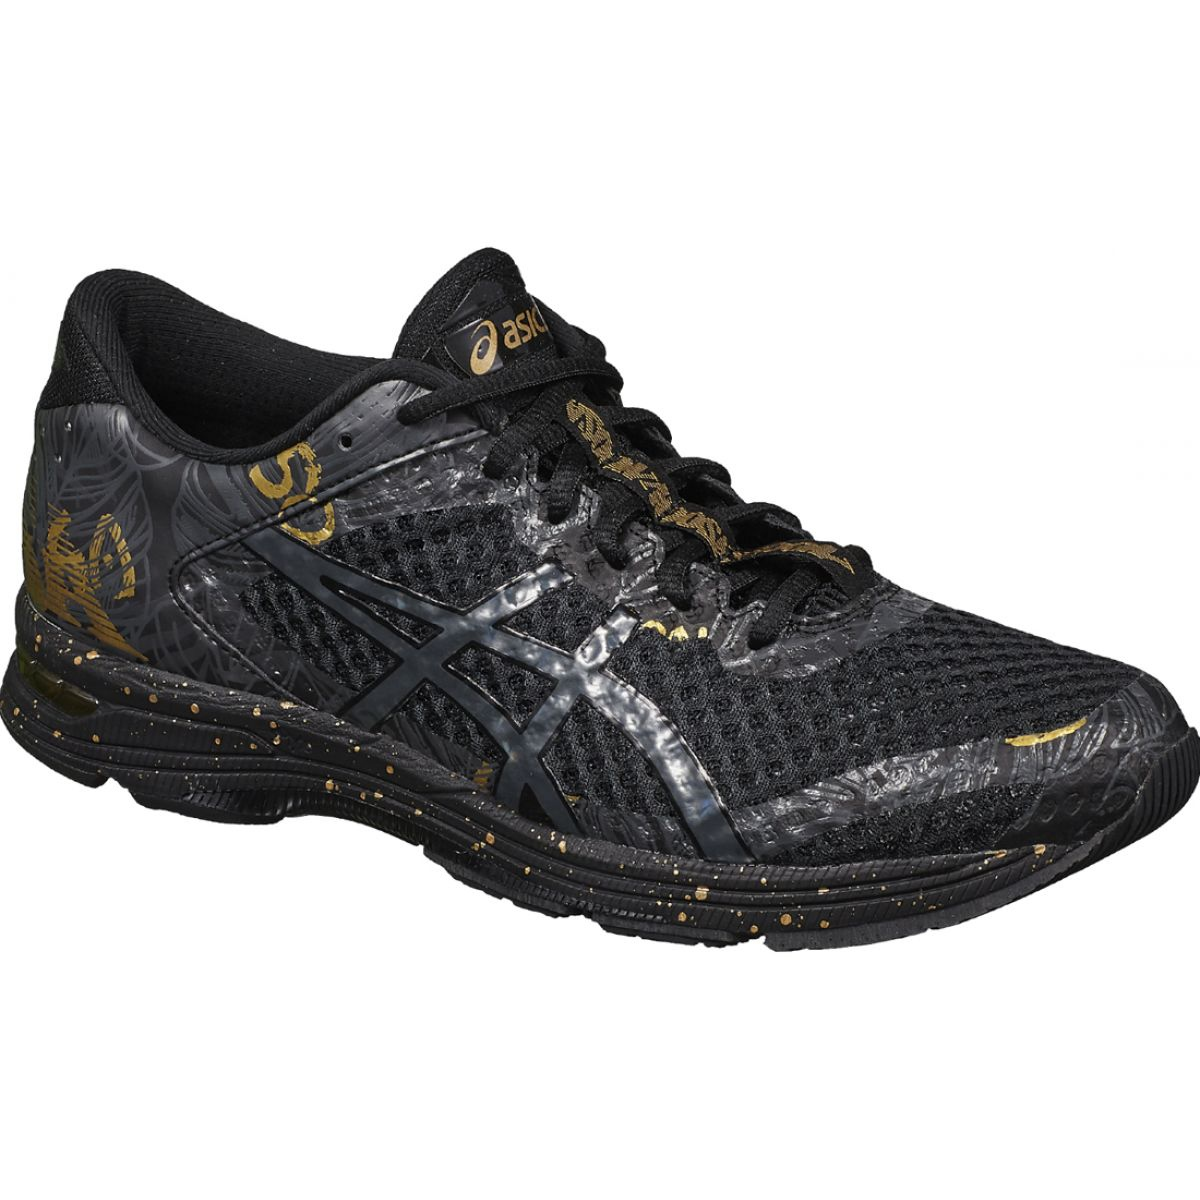 Details about Black Asics Gel Noosa Tri 11 M 1011A631 001 running shoes